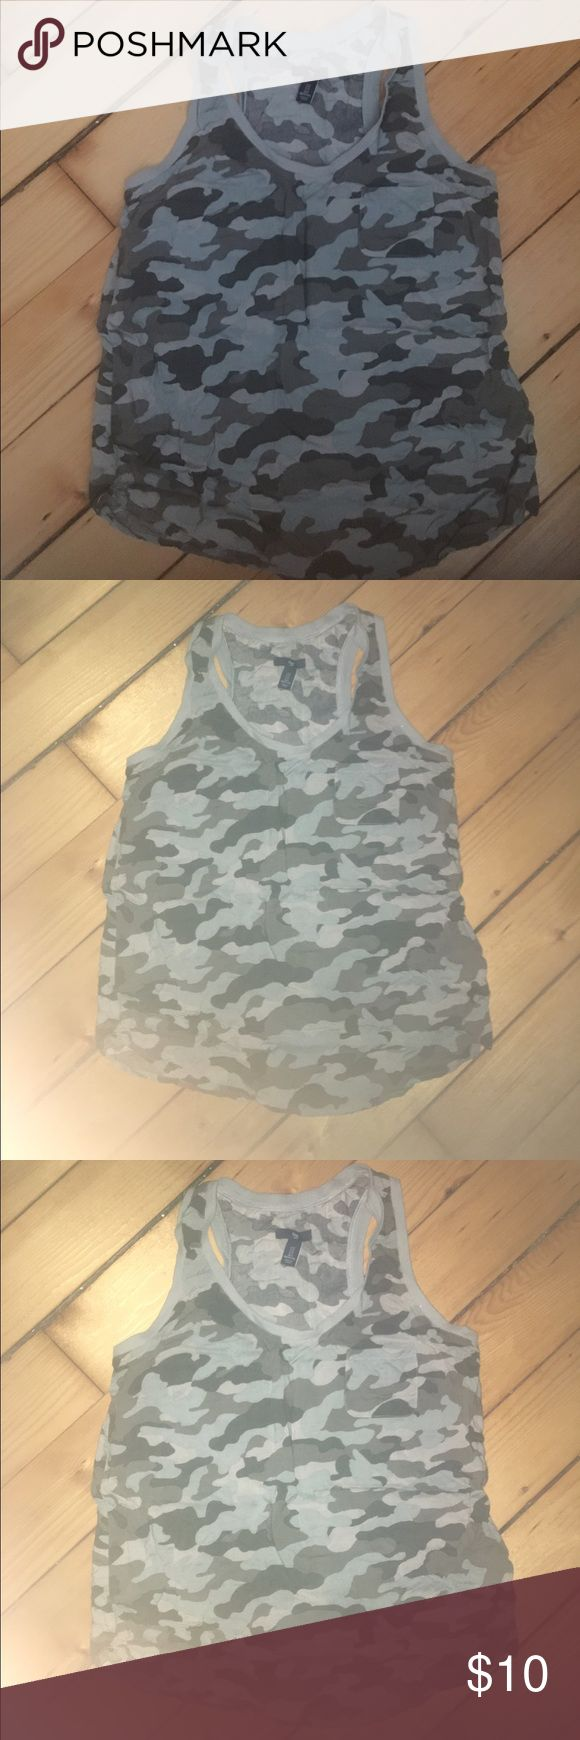 GAP Racerback camo tank top Camouflage tank top slightly sheer. Nice cool fit. Breathable material size S , great for beach days and working out. Offers welcome. GAP Tops Tank Tops